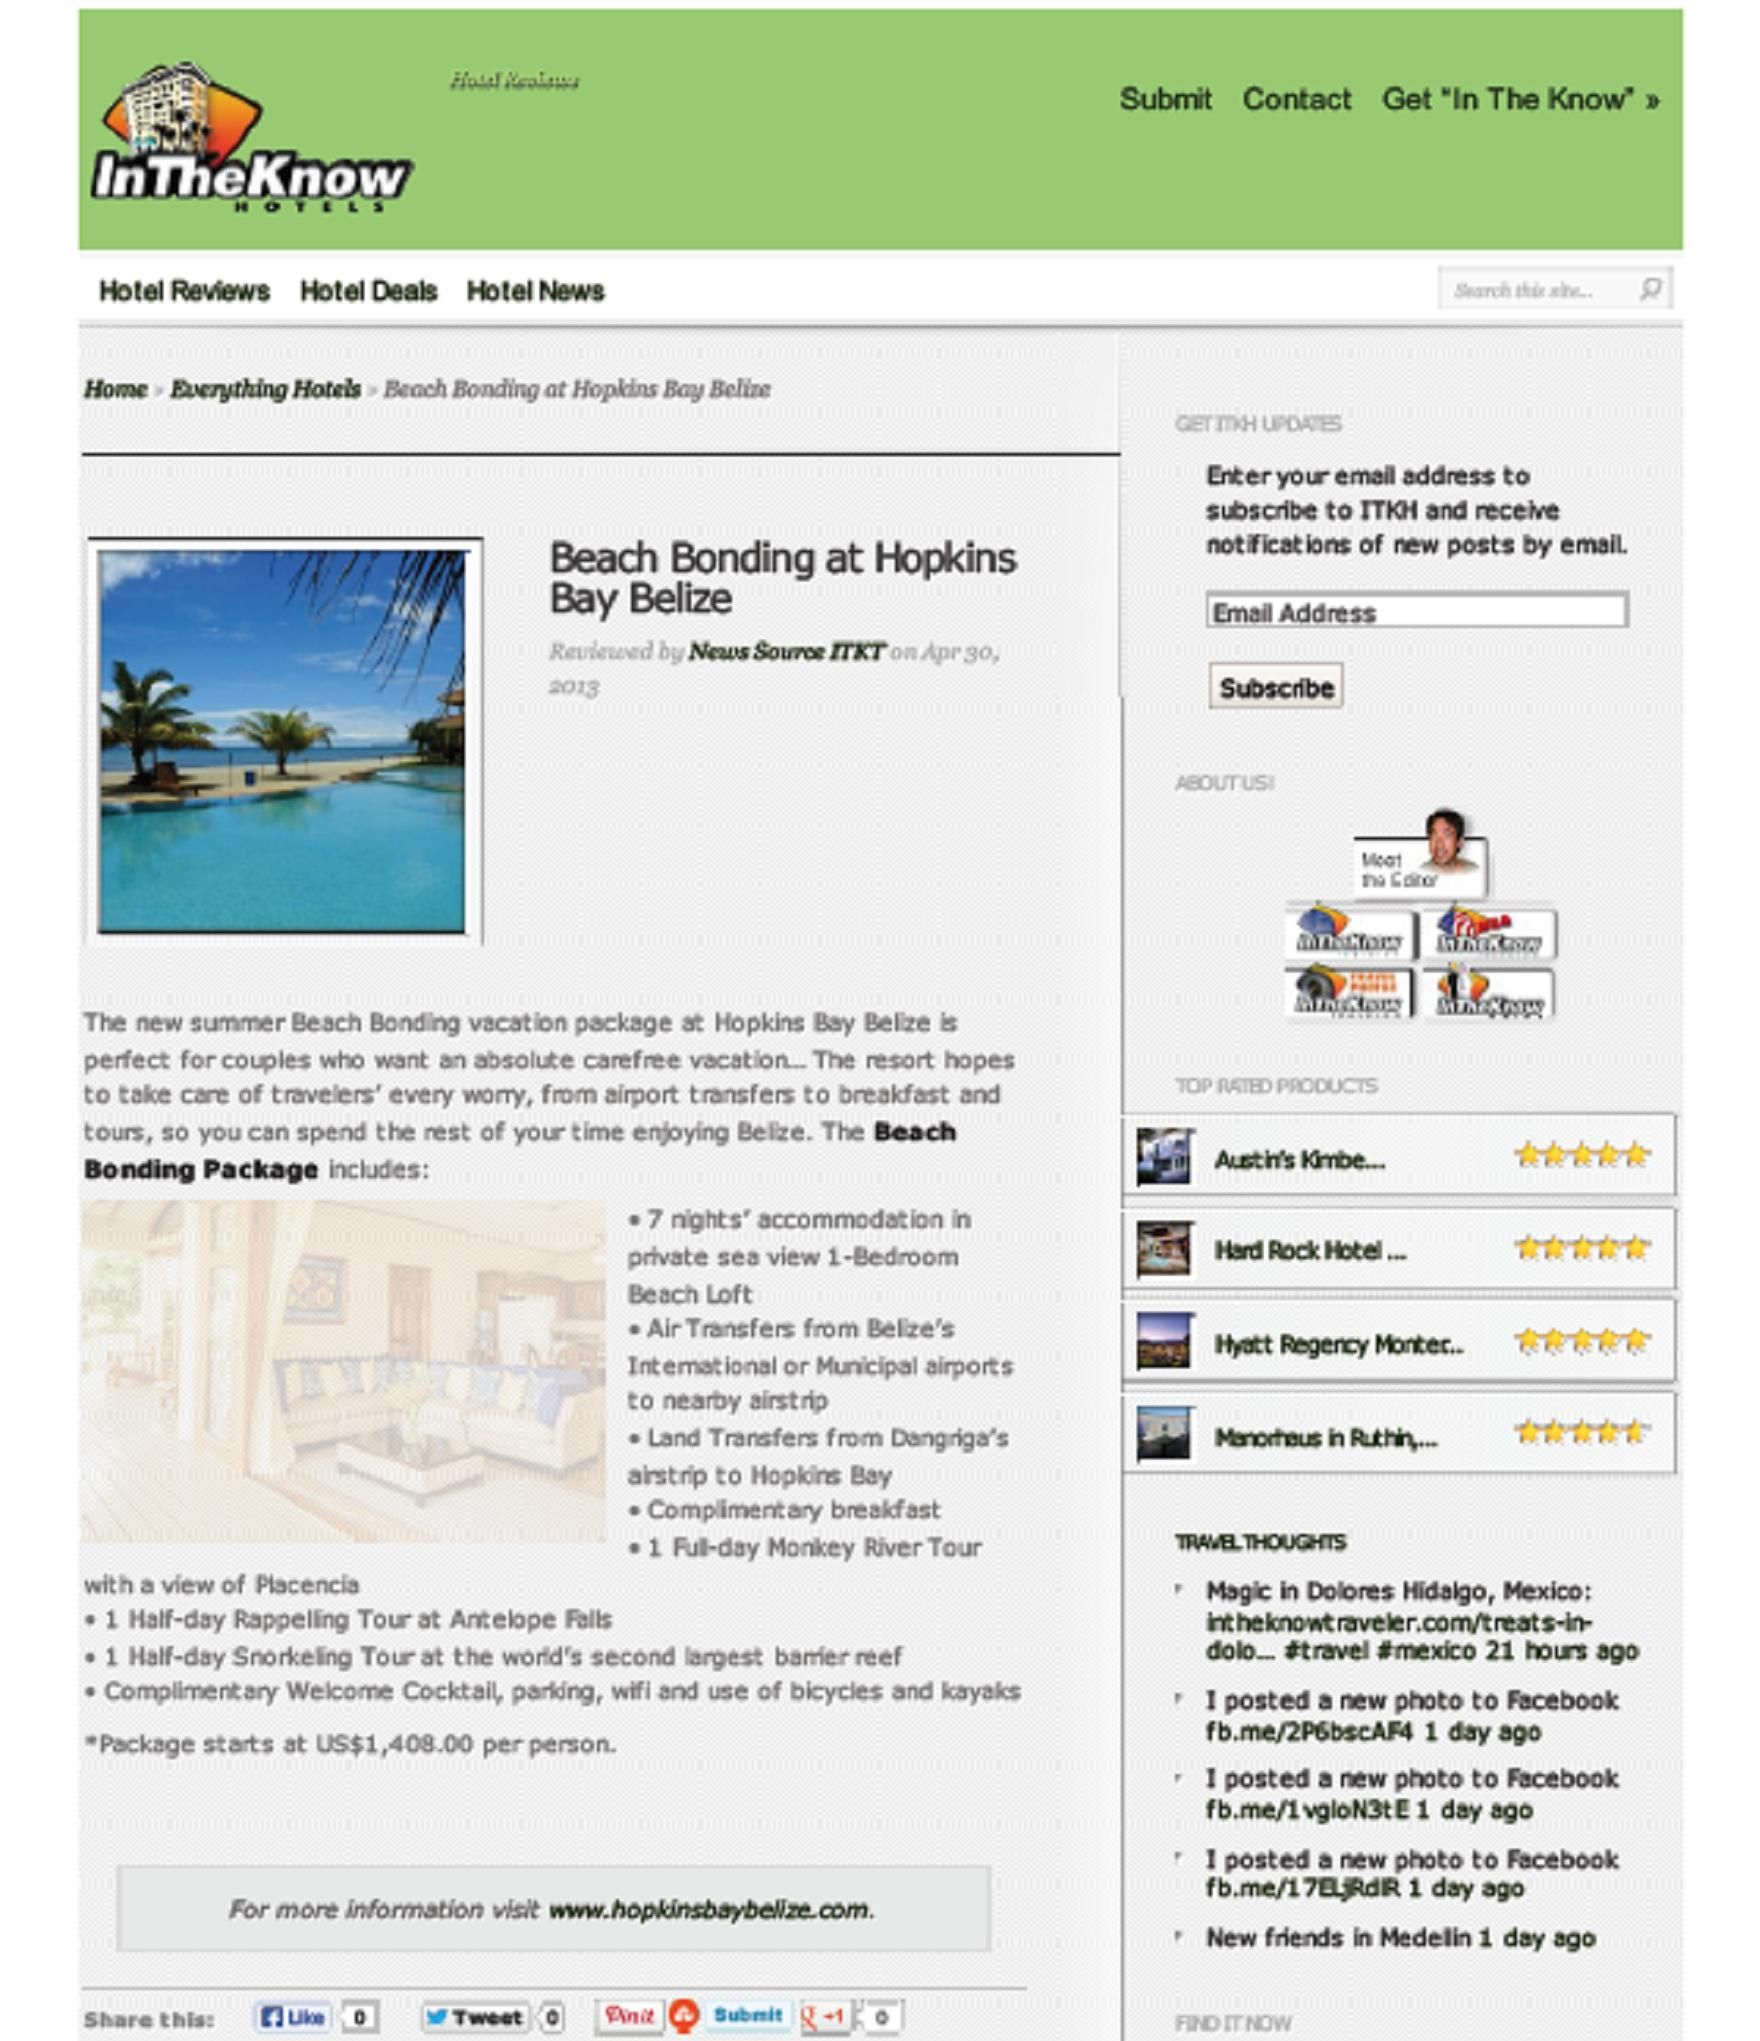 In The Know Hotels: http://www.hopkinsbaybelize.com/wp-content/themes/hopkins_bay_resort/images/In%20The%20Know%20Hotels.pdf